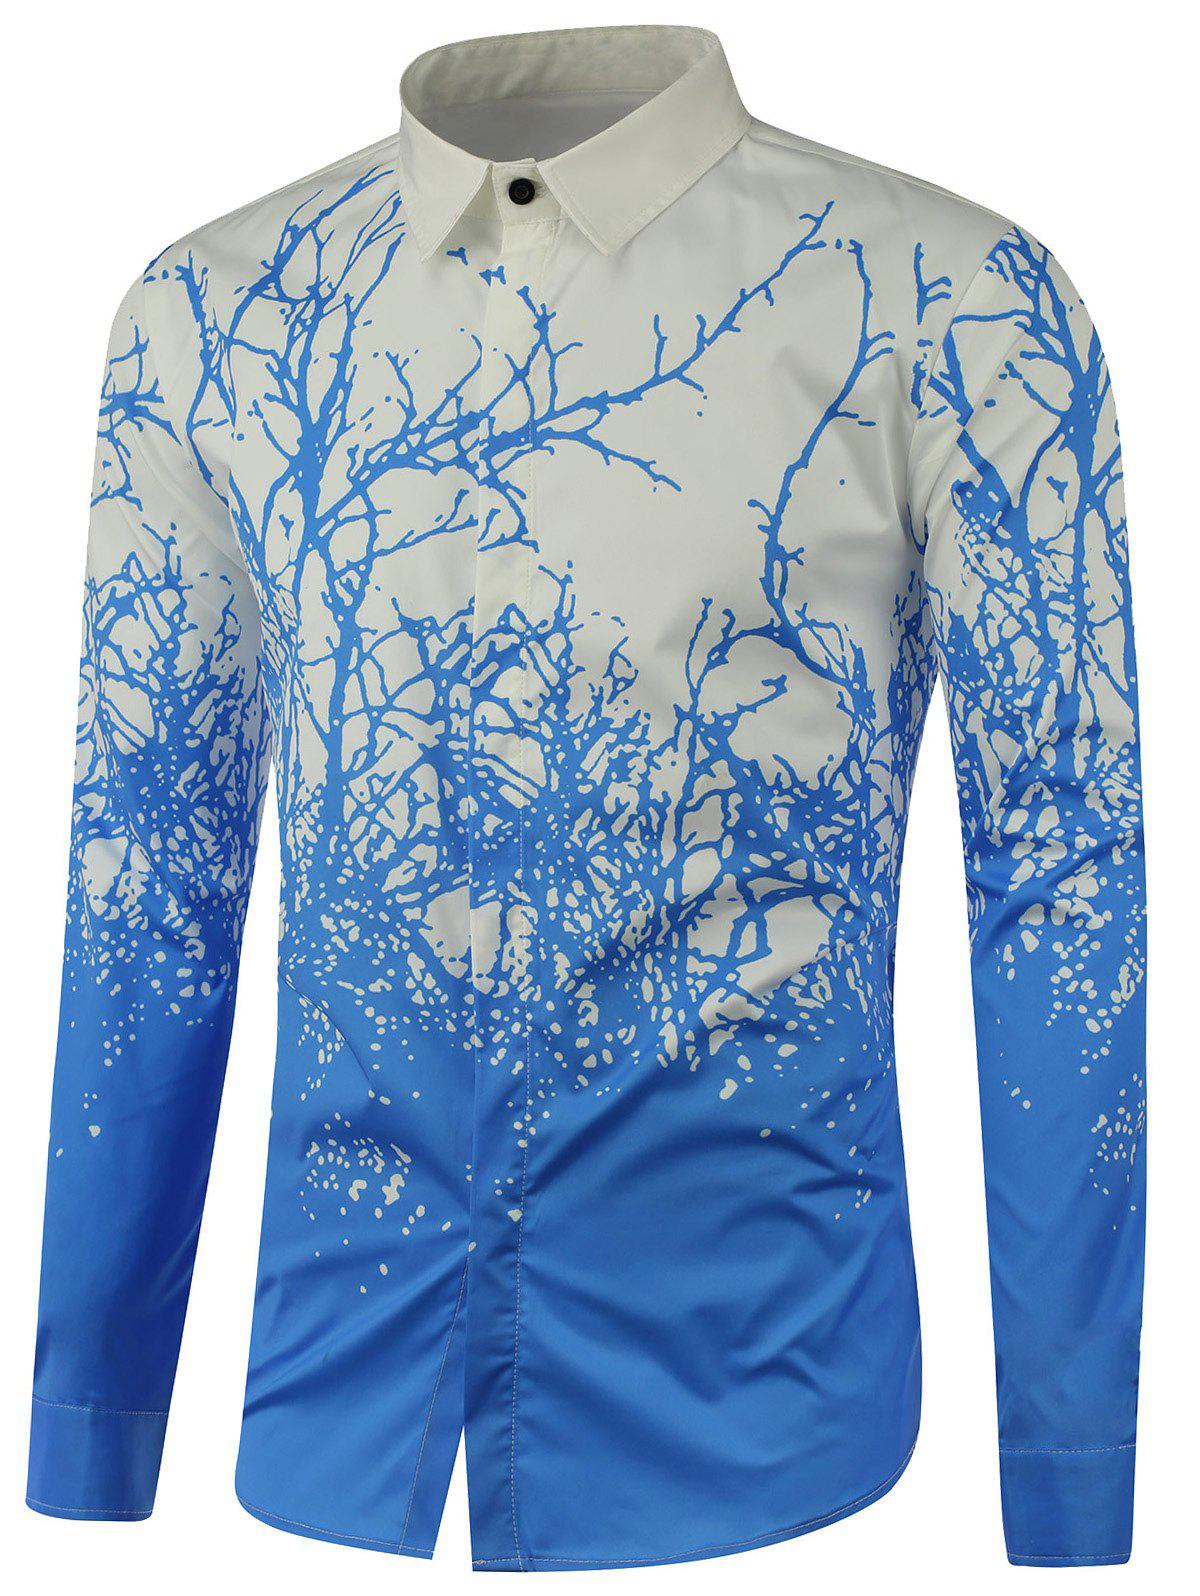 Tree Branch Printed Long Sleeve Shirt - BLUE L